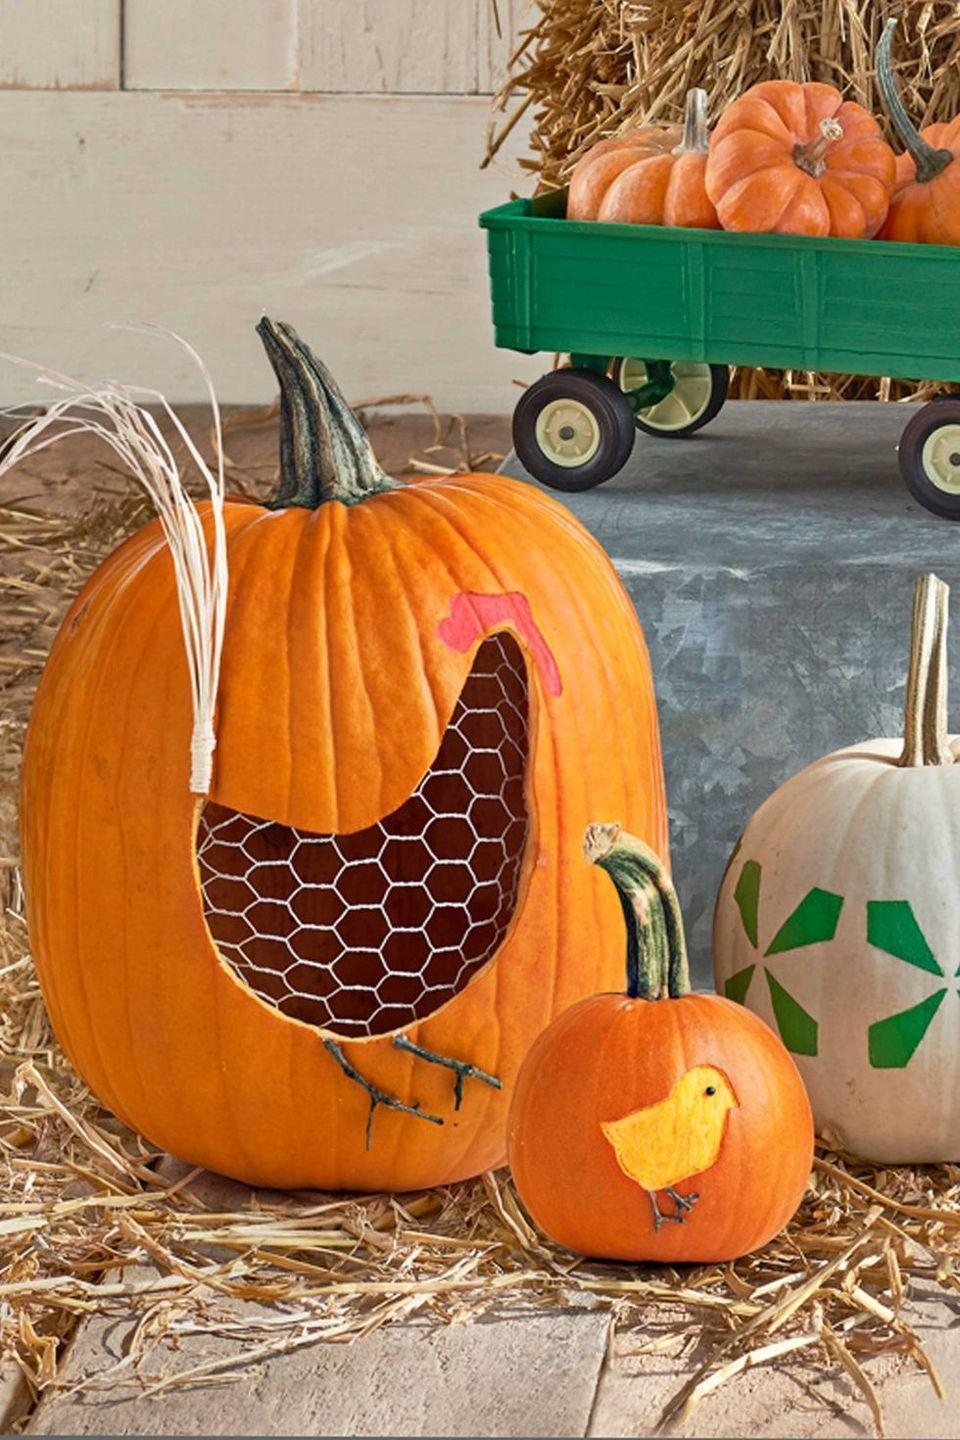 """<p>Even if you haven't made your farm dreams come true (yet), you can play pretend with these pumpkins decked out with hen and chick designs. Fill the cut-outs with chicken wire to match your home's rustic aesthetic. </p><p><a class=""""link rapid-noclick-resp"""" href=""""https://www.amazon.com/BSTOOL-Lightweight-Galvanized-Hexagonal-Pliers-10/dp/B083GP9CXC/?tag=syn-yahoo-20&ascsubtag=%5Bartid%7C10055.g.238%5Bsrc%7Cyahoo-us"""" rel=""""nofollow noopener"""" target=""""_blank"""" data-ylk=""""slk:SHOP CHICKEN WIRE"""">SHOP CHICKEN WIRE</a></p>"""